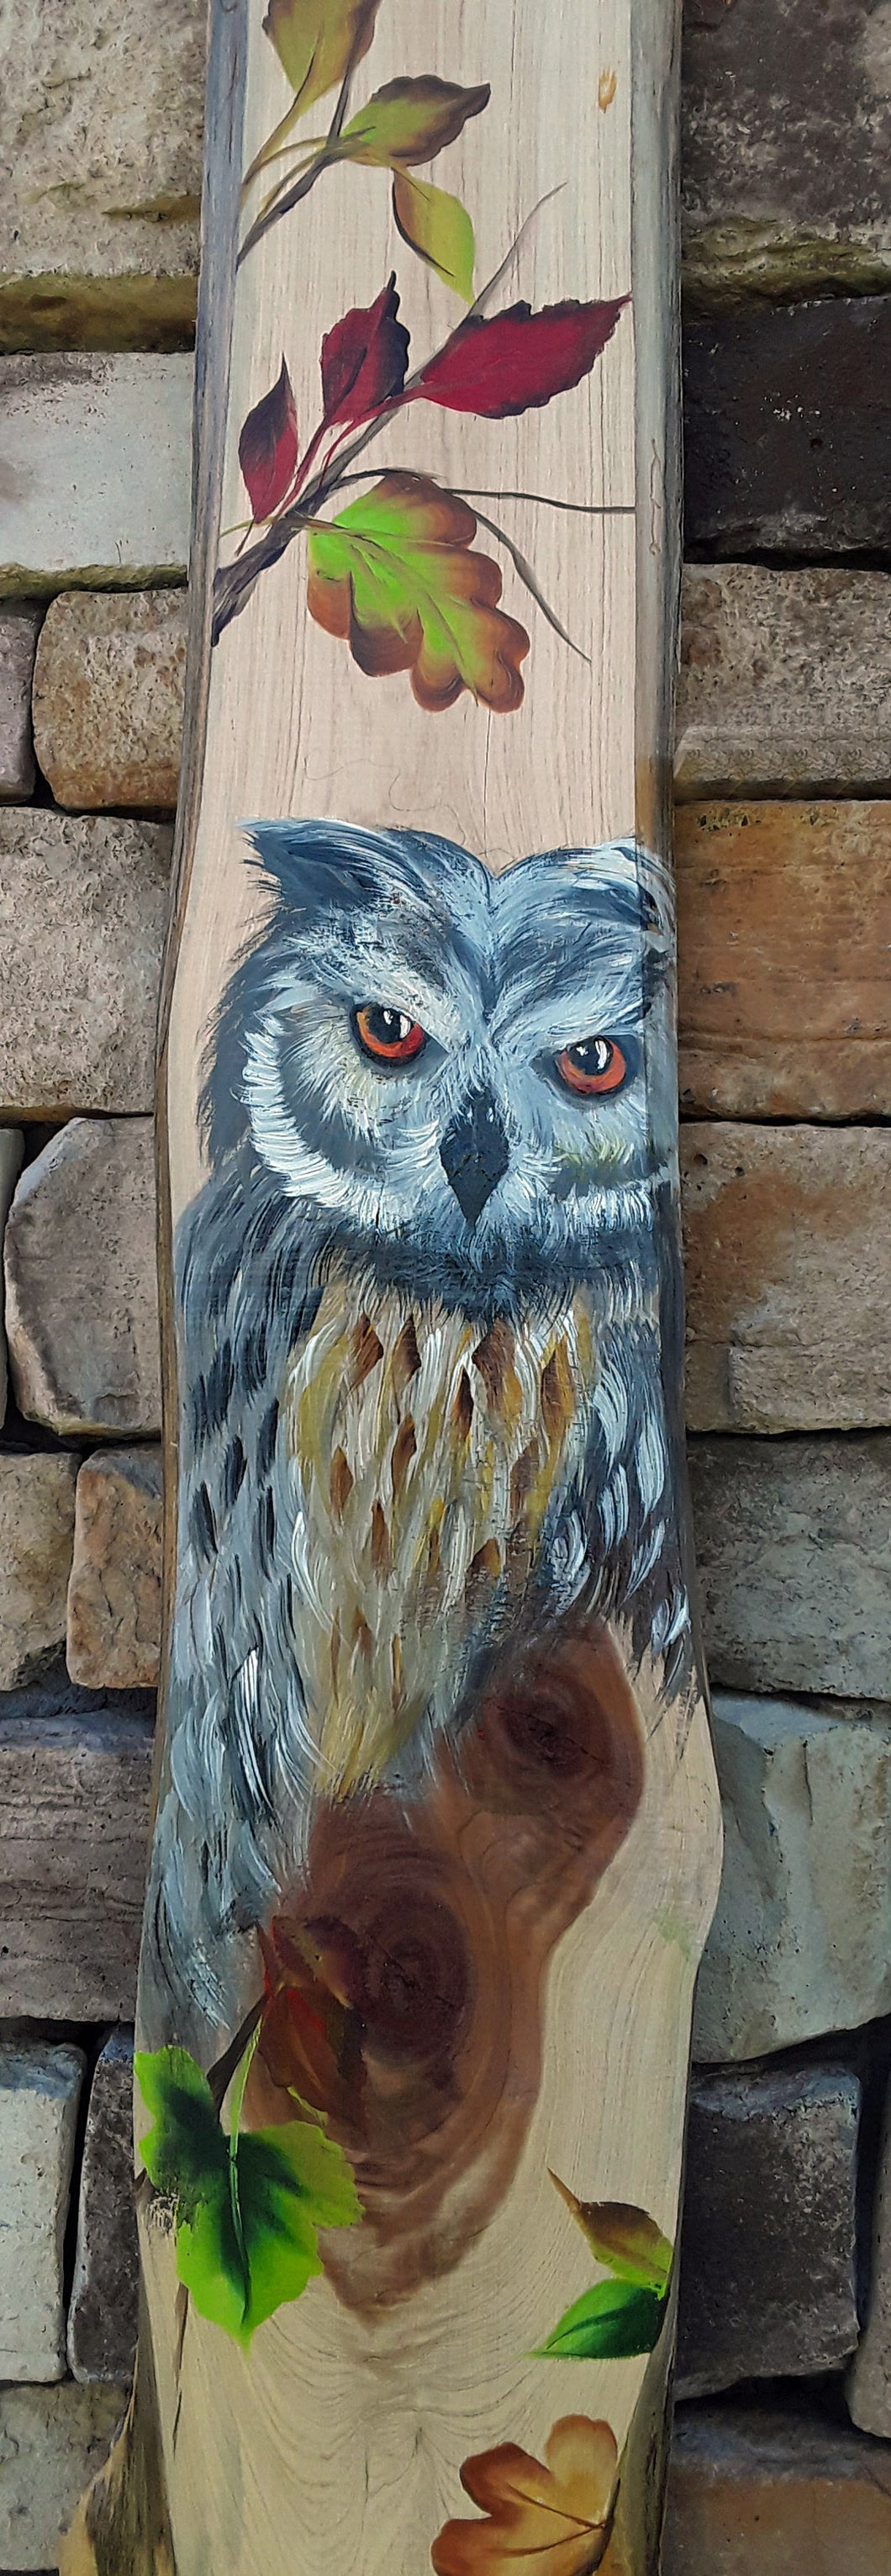 Owl Wood Plank Project Packet